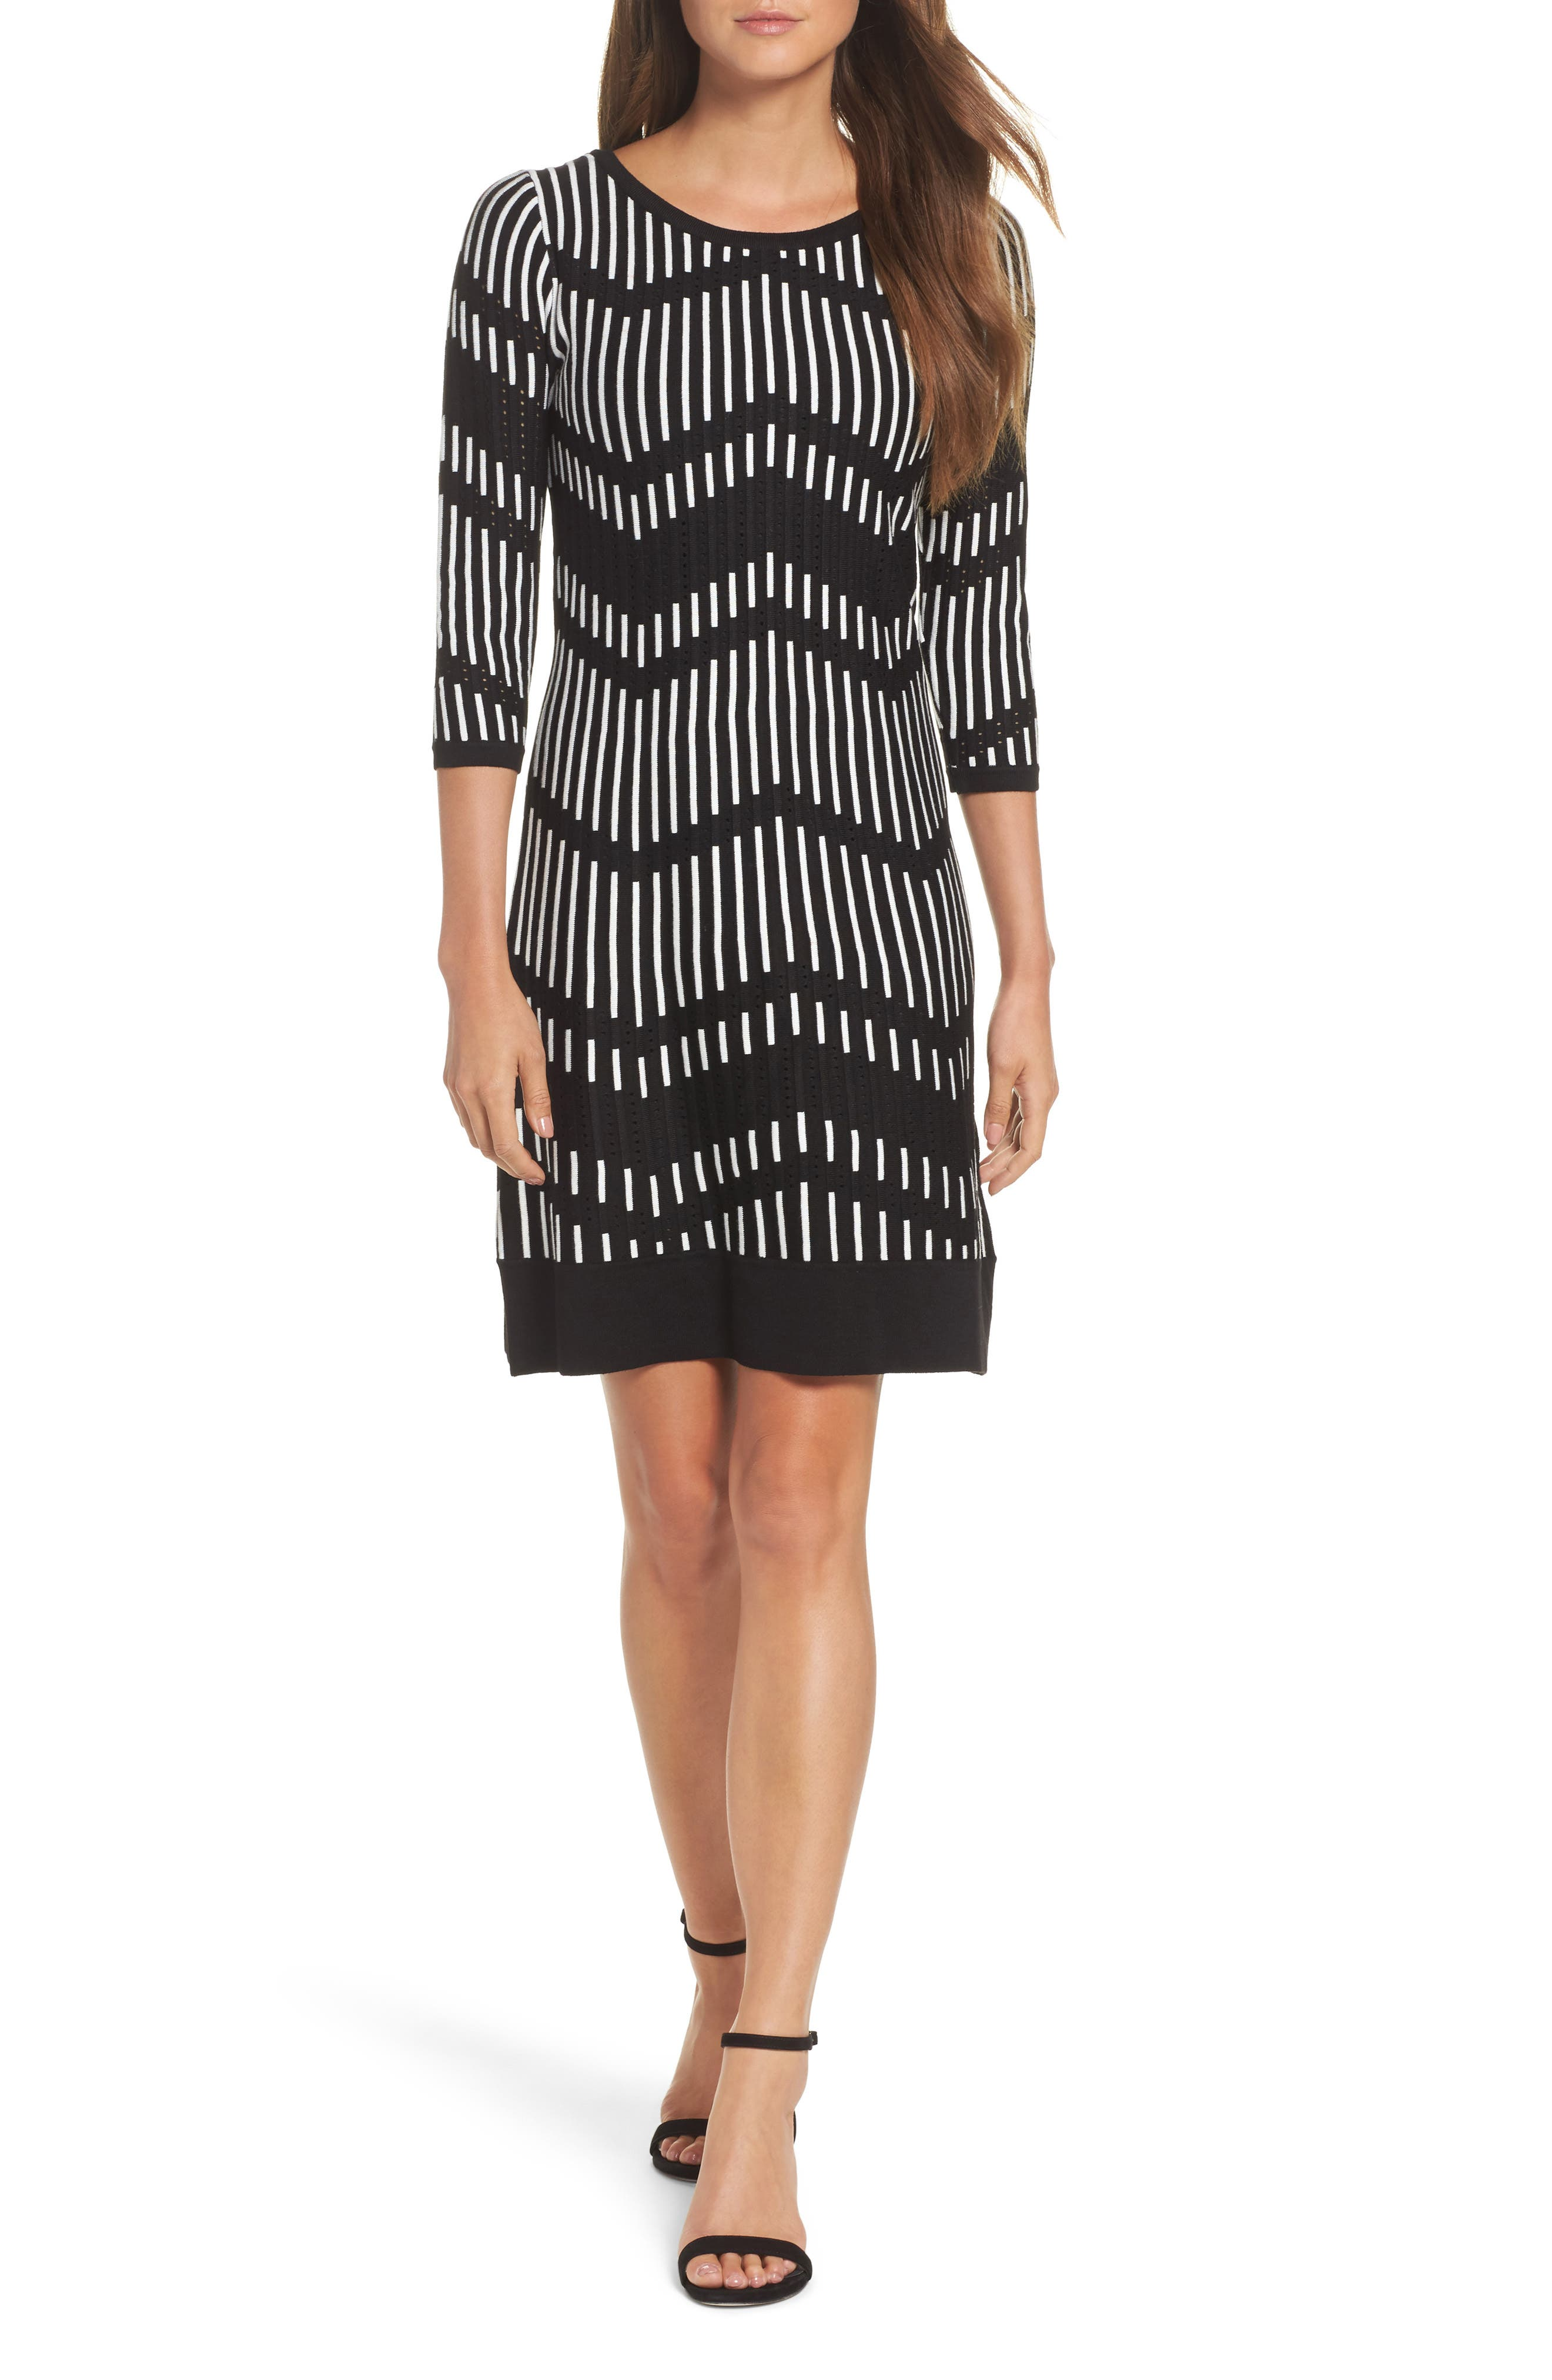 Alternate Image 1 Selected - Taylor Dresses Zig Zag Sweater Dress